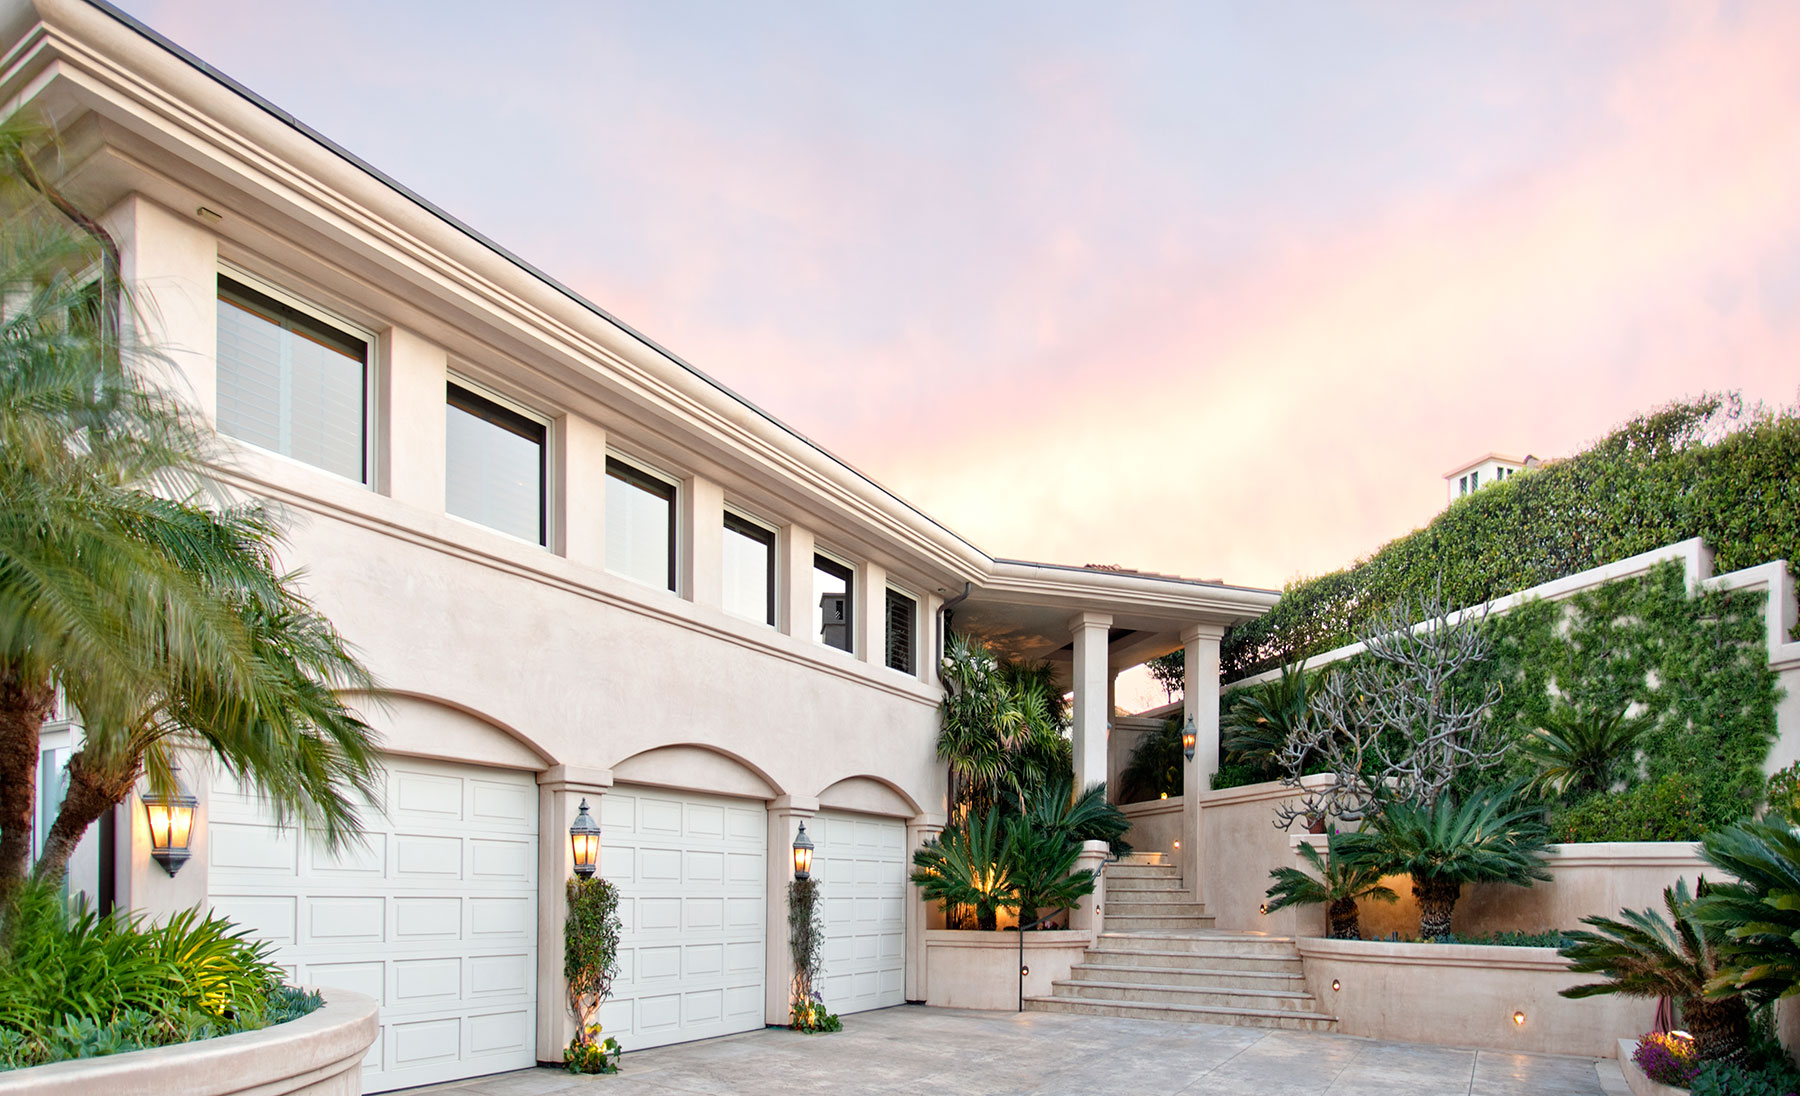 Single Family Home for Sale at 33 Monarch Bay Dr. Dana Point, California, 92629 United States